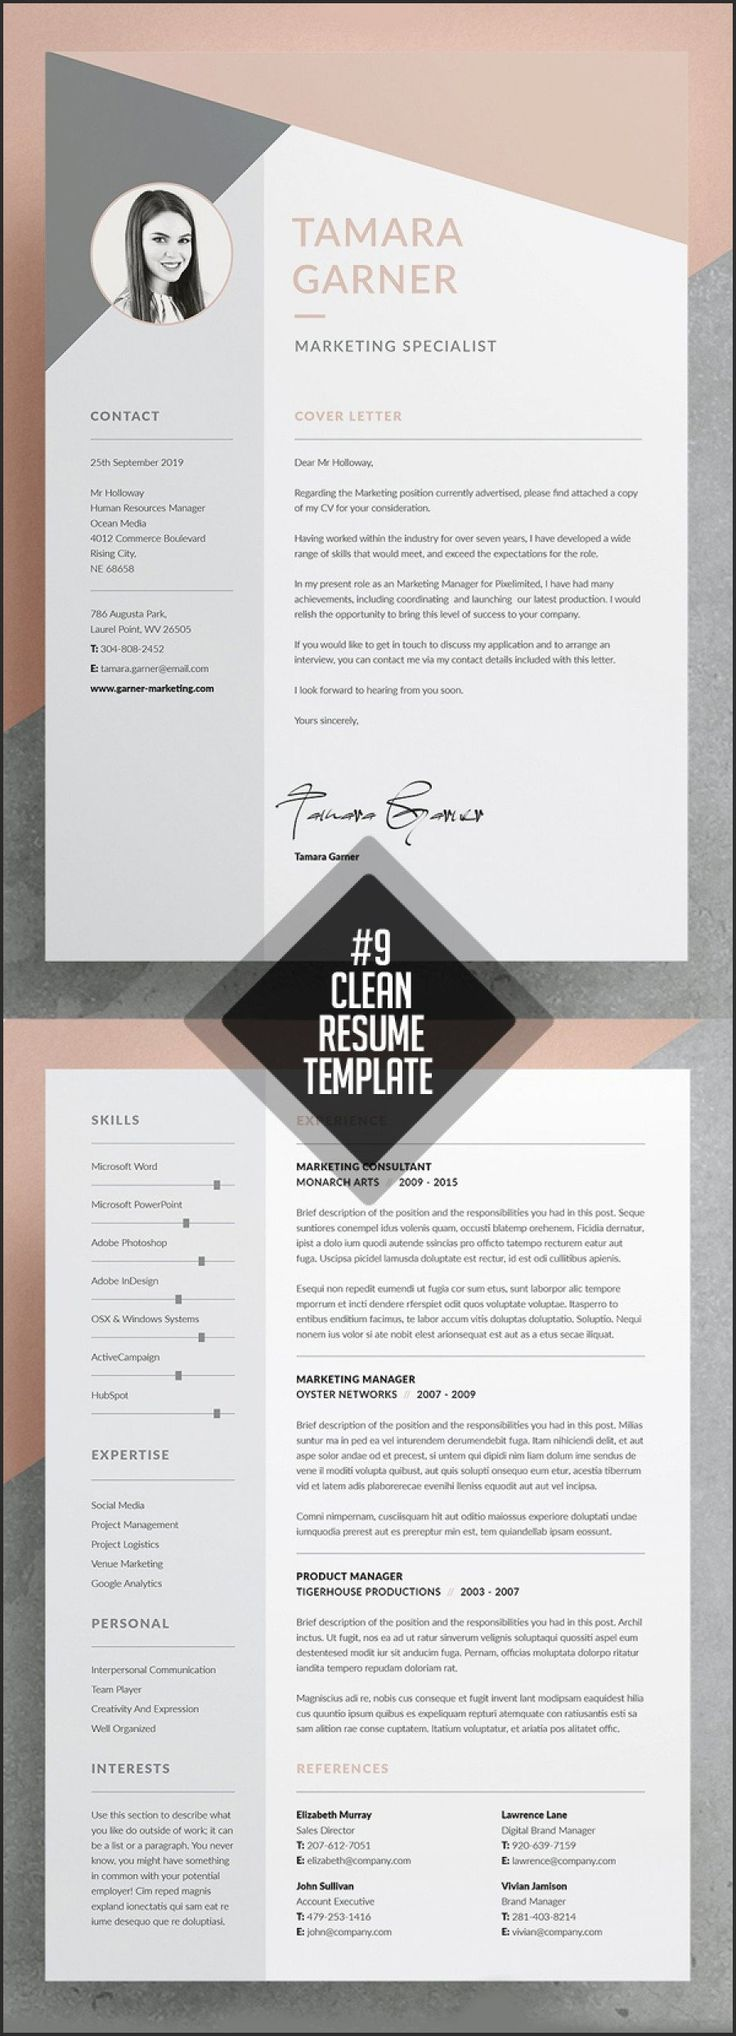 Adobe Indesign Resume Template Best Of Adobe Indesign